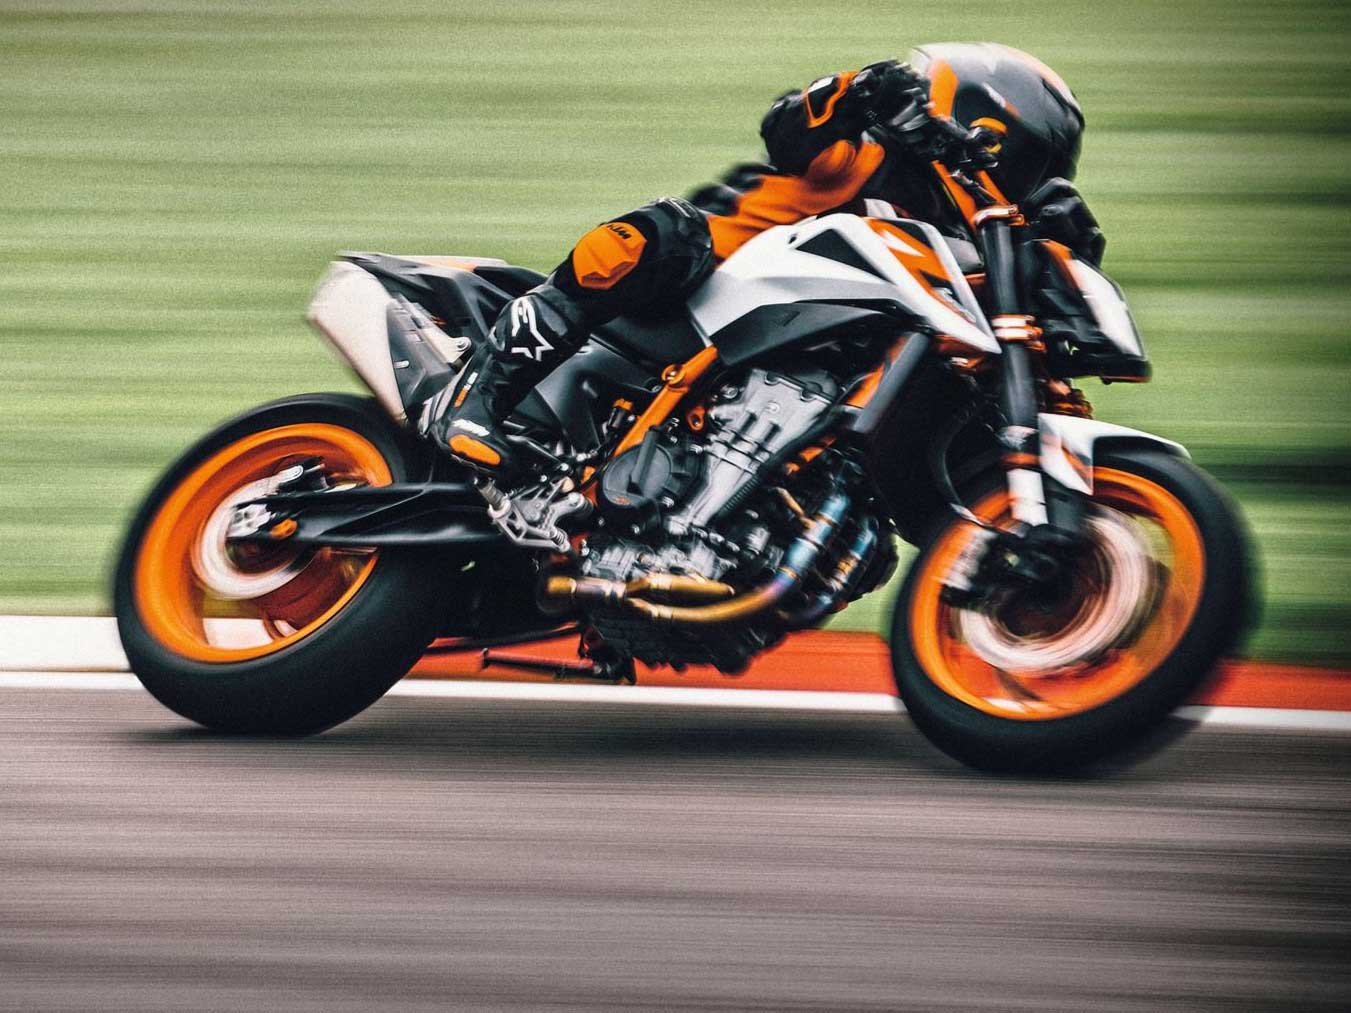 2021 KTM 890 Duke R First Look Preview | Motorcyclist